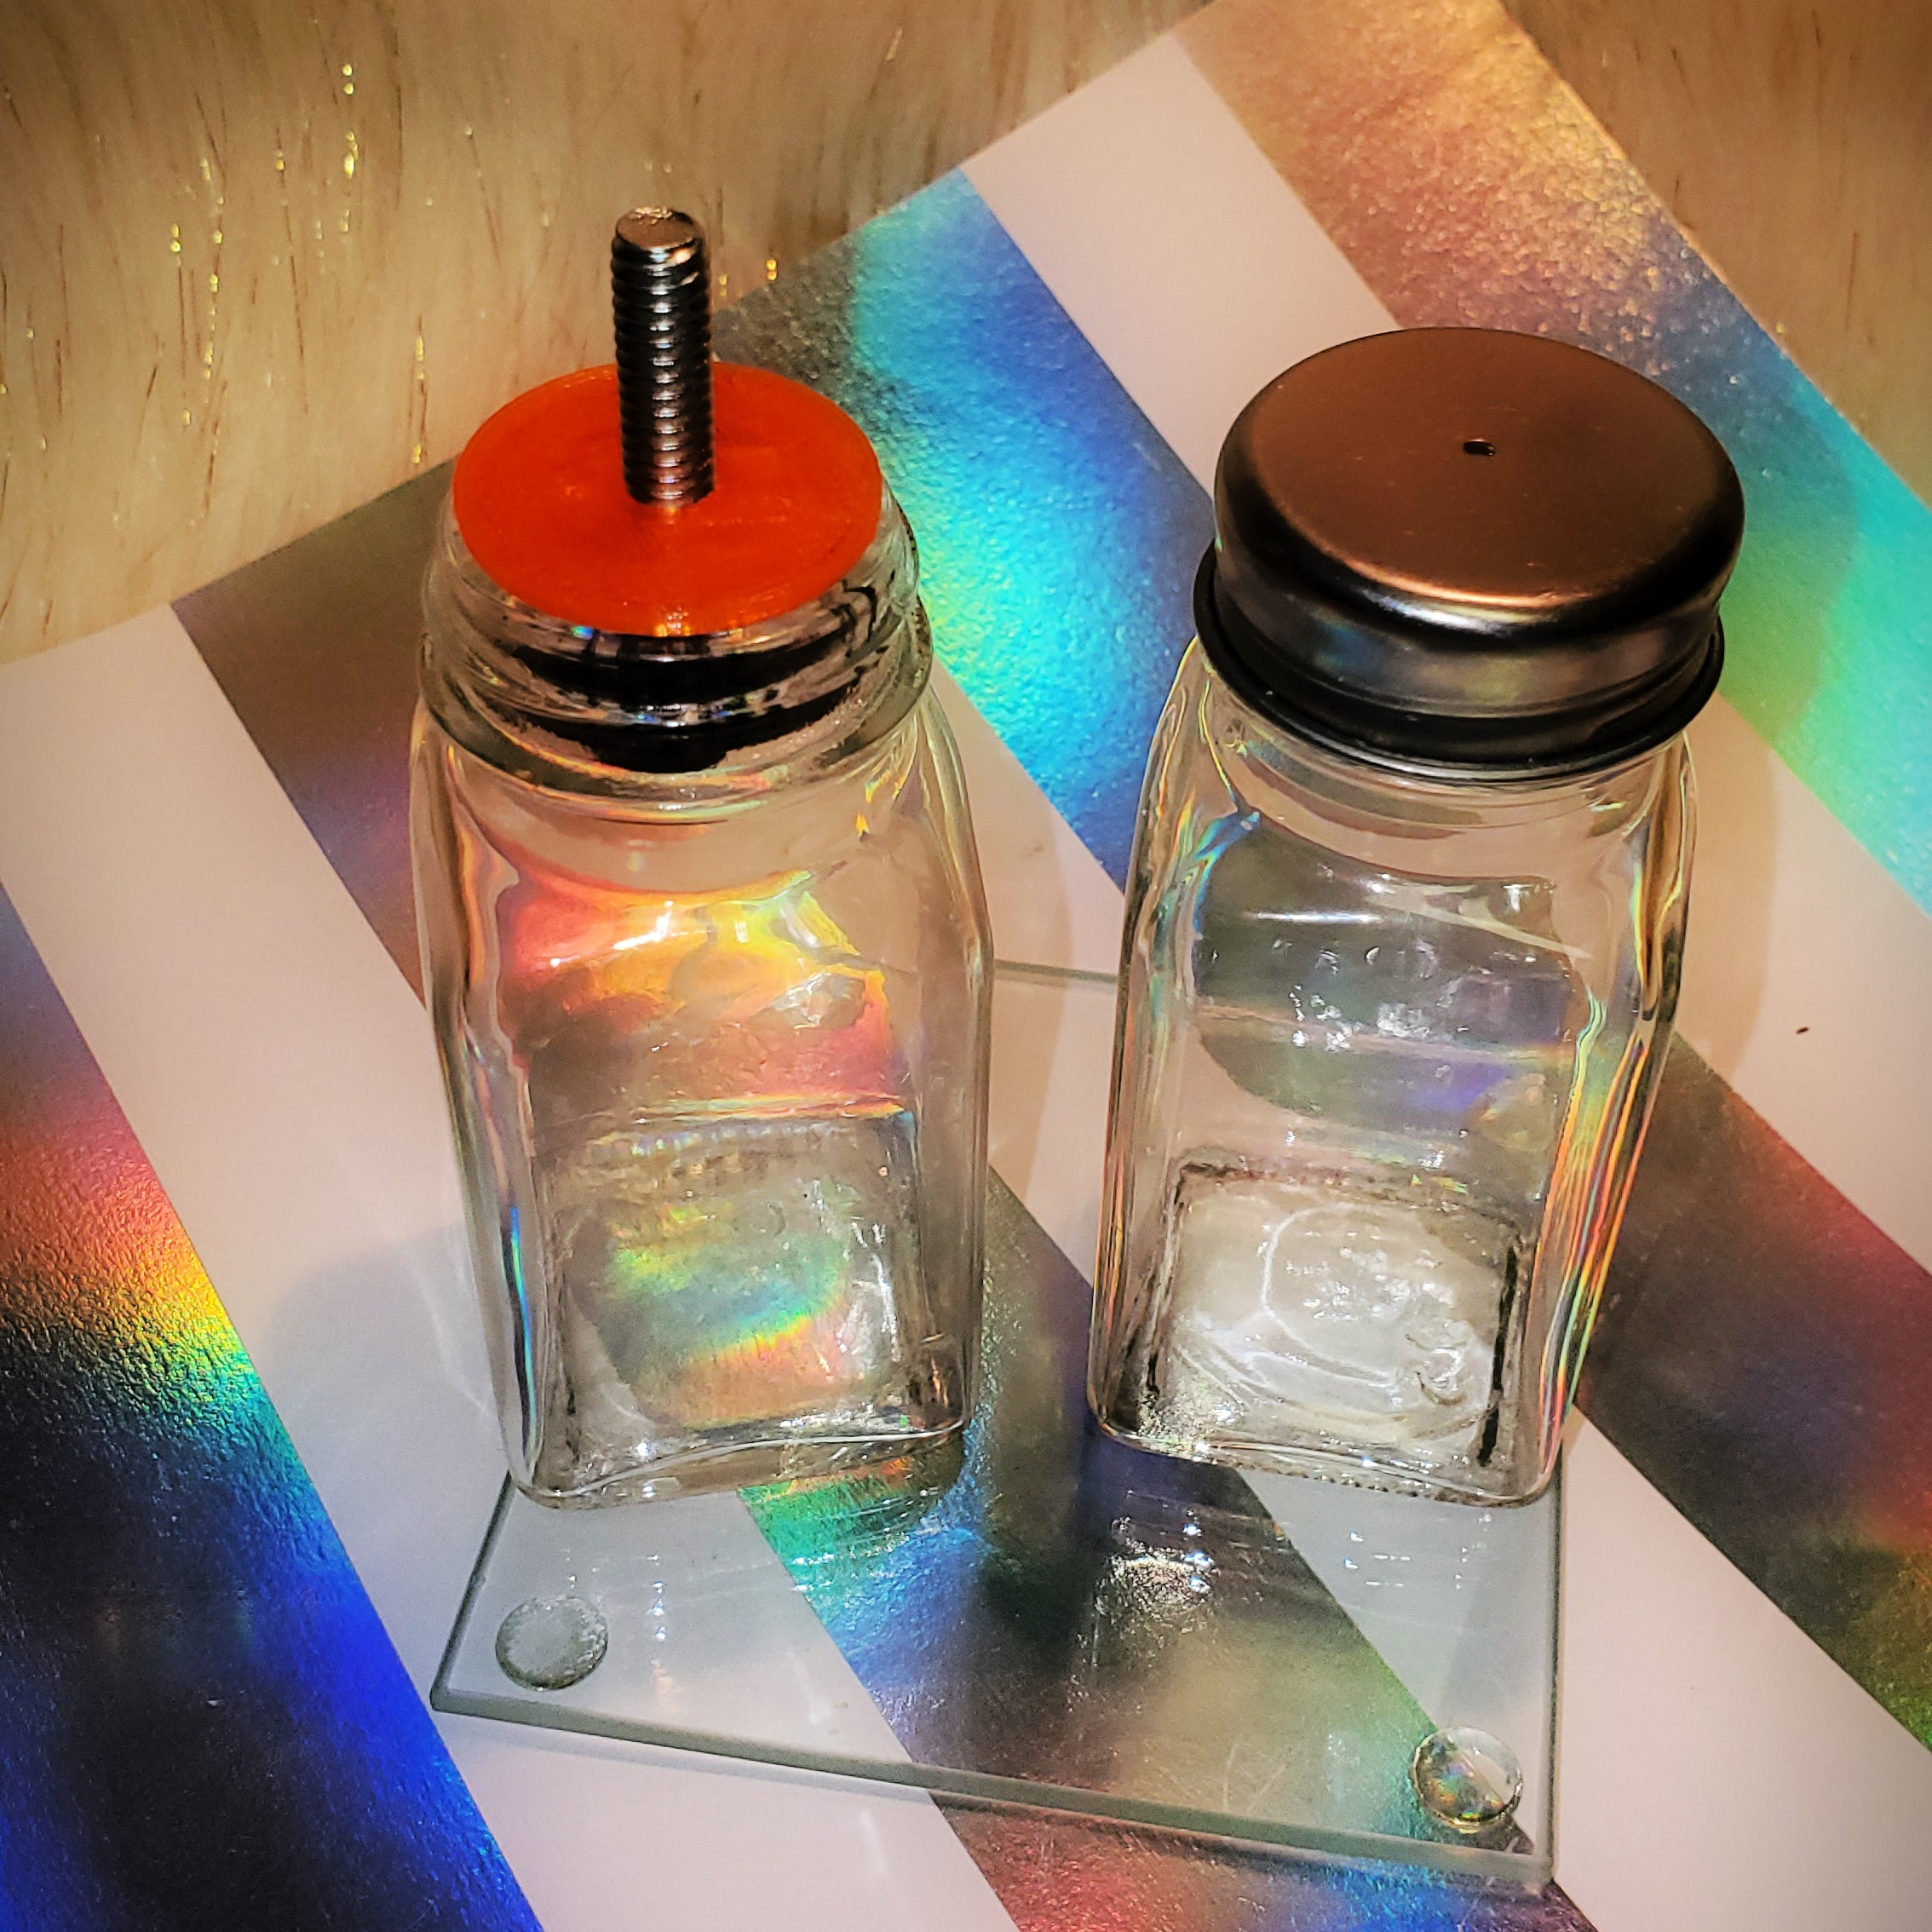 Customizable Salt & Pepper Shaker set